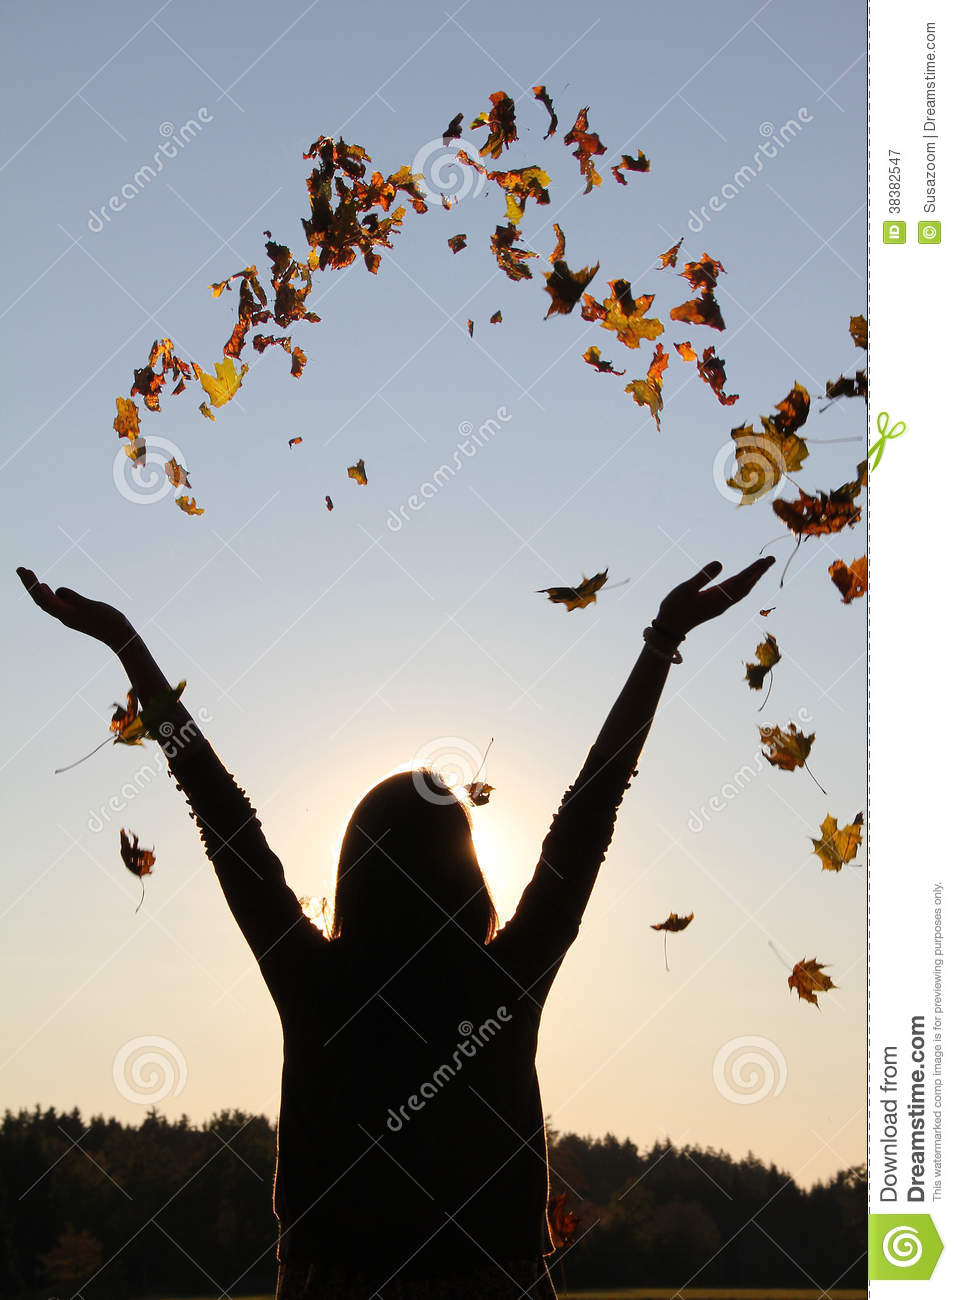 girl with outstretched arms throwing autumn leaves in the